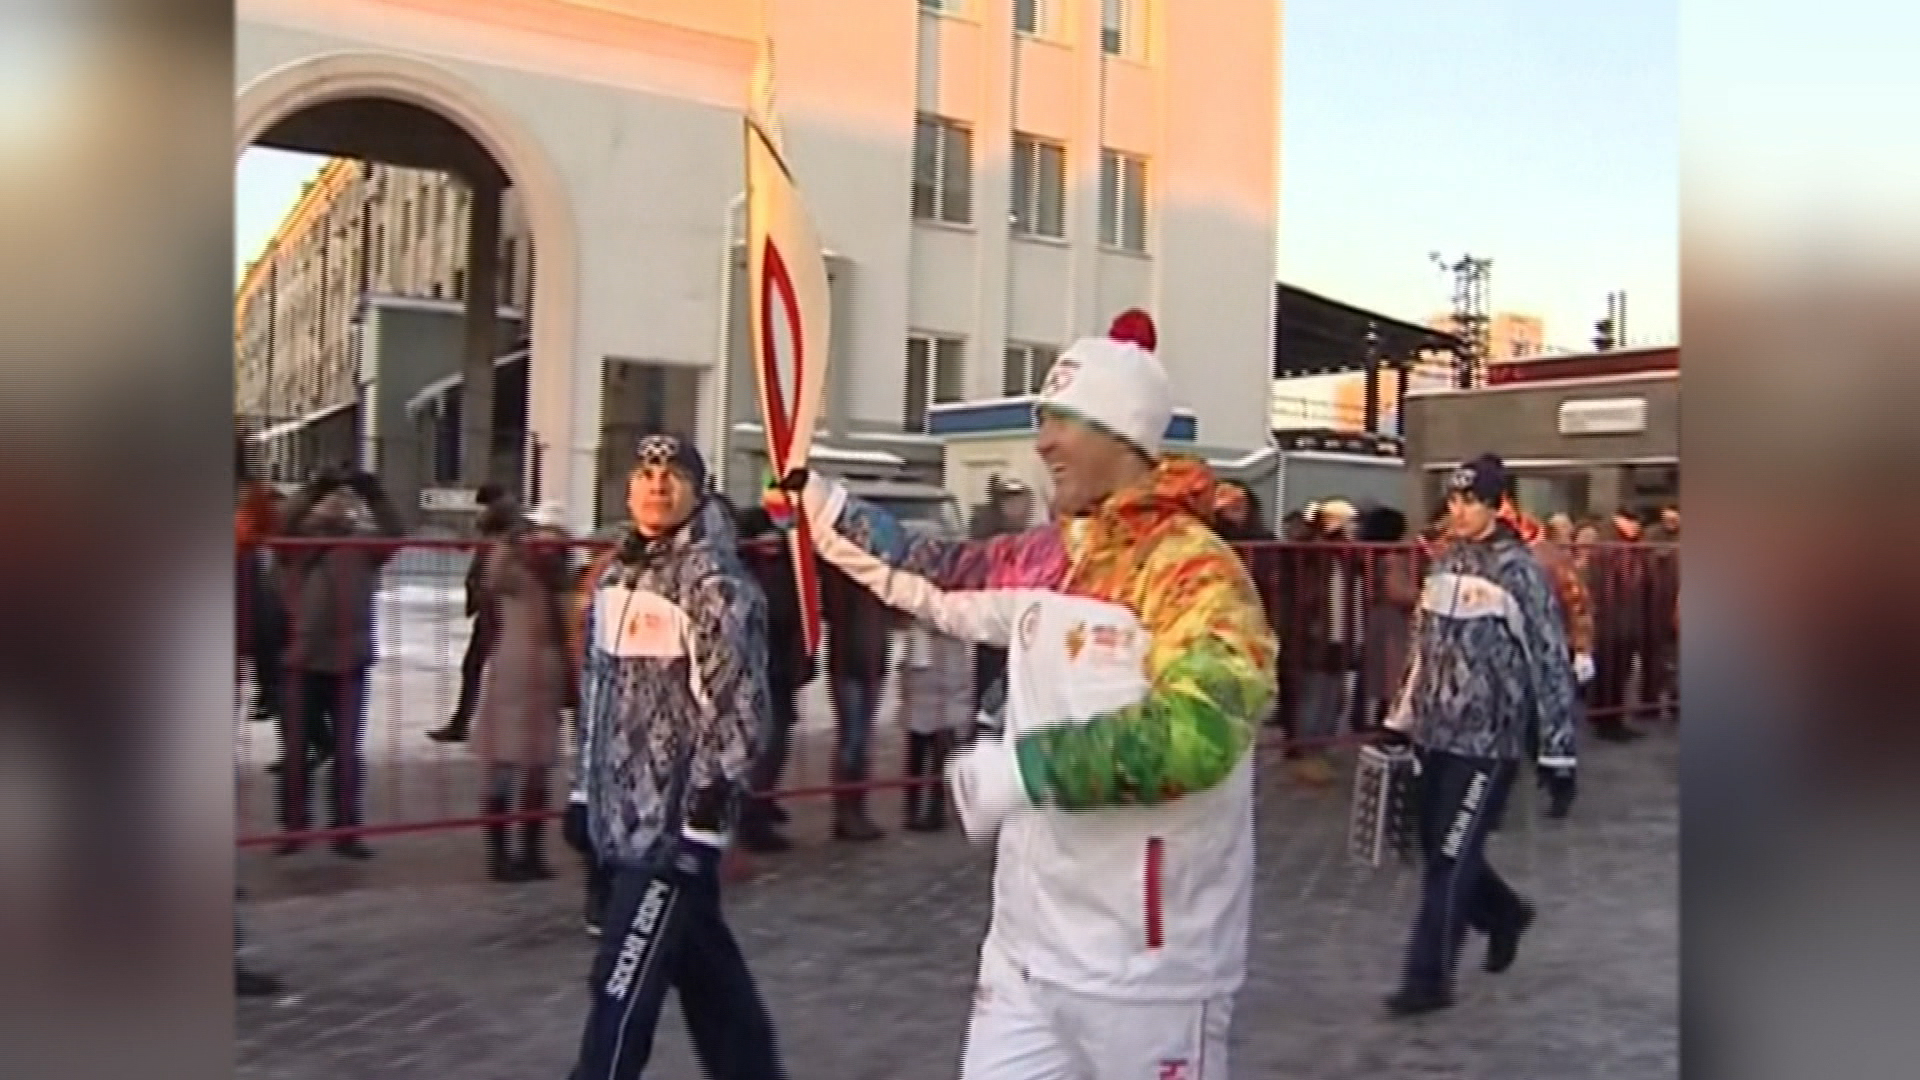 Terror threats plague lead-up to Sochi games